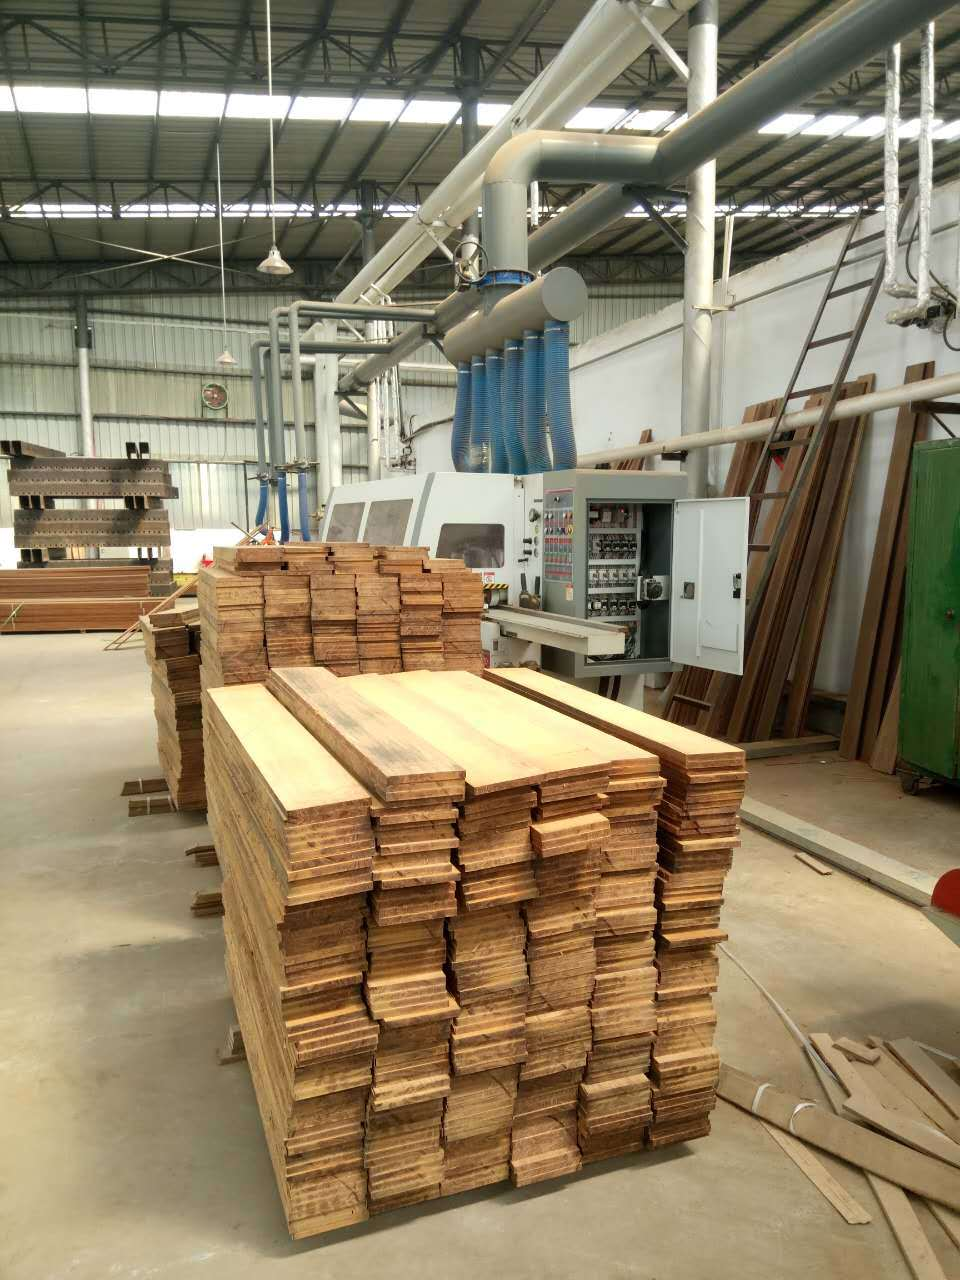 Outdoor Decking Boards, Strand Woven Bamboo Flooring